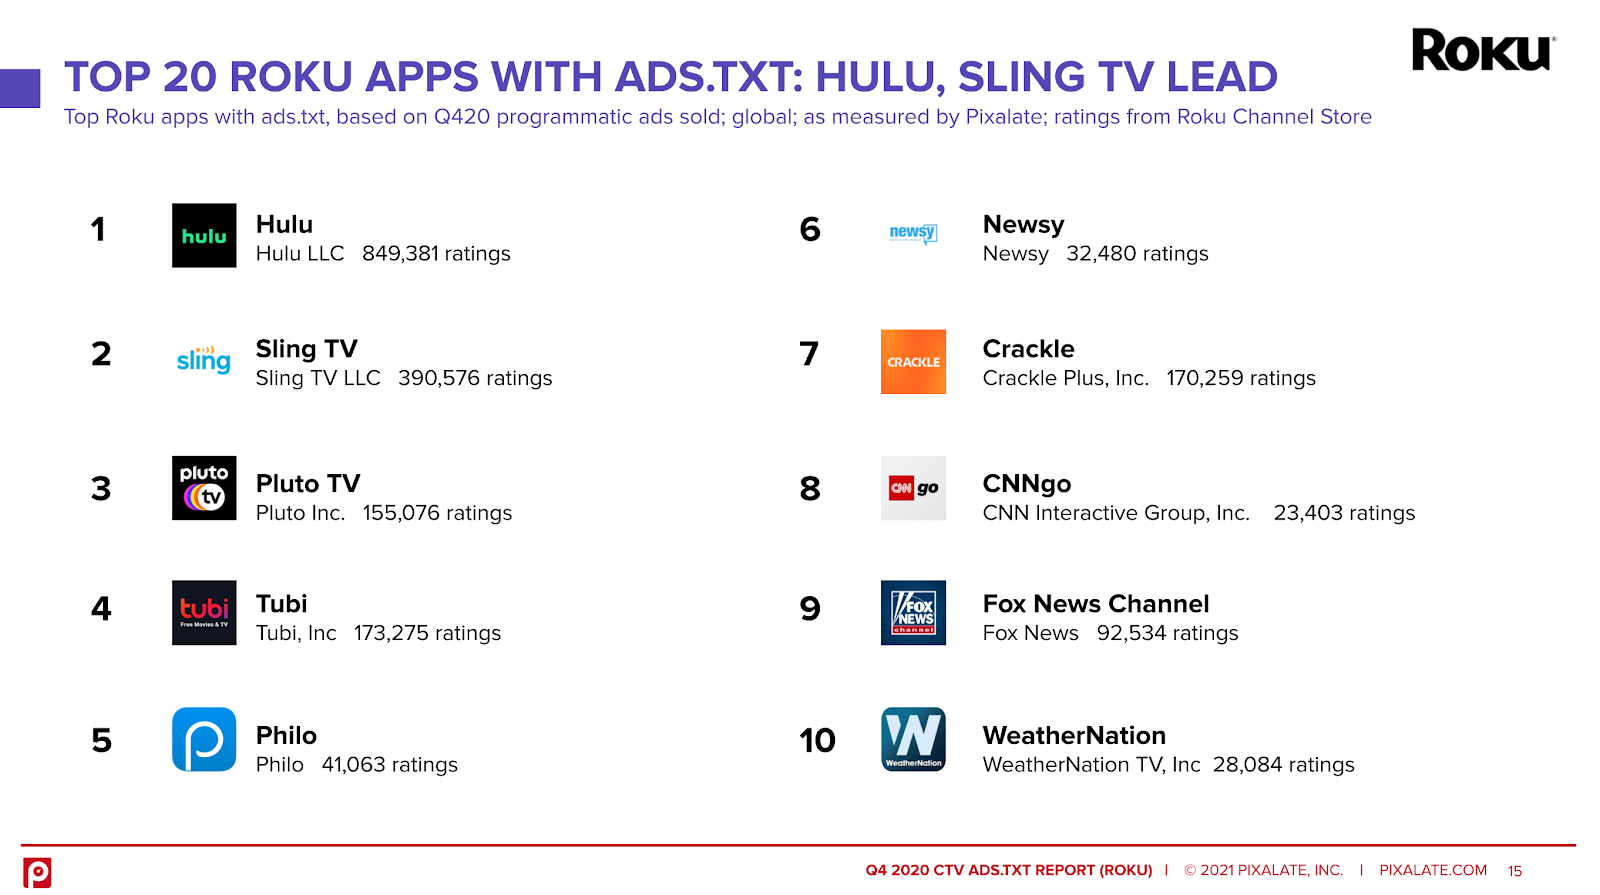 top 20 roku apps with ads.txt